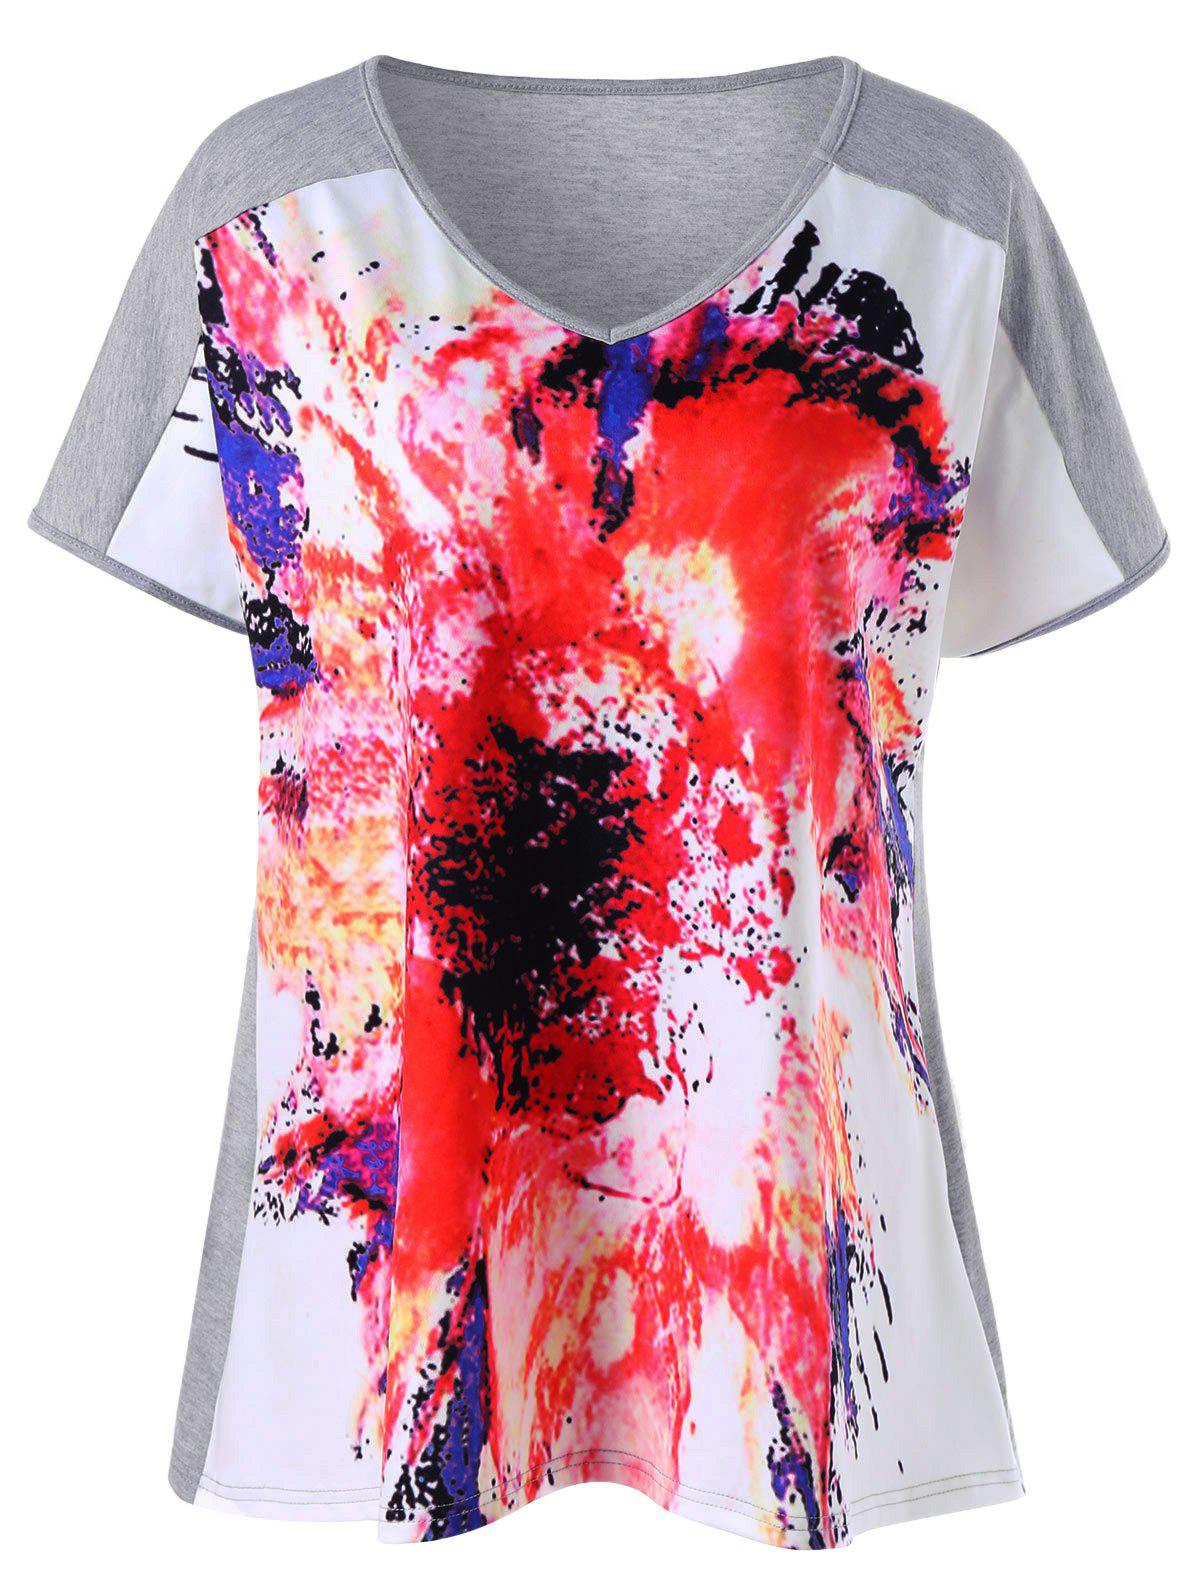 Plus Size V Neck Tie Dye T-Shirt от Dresslily.com INT